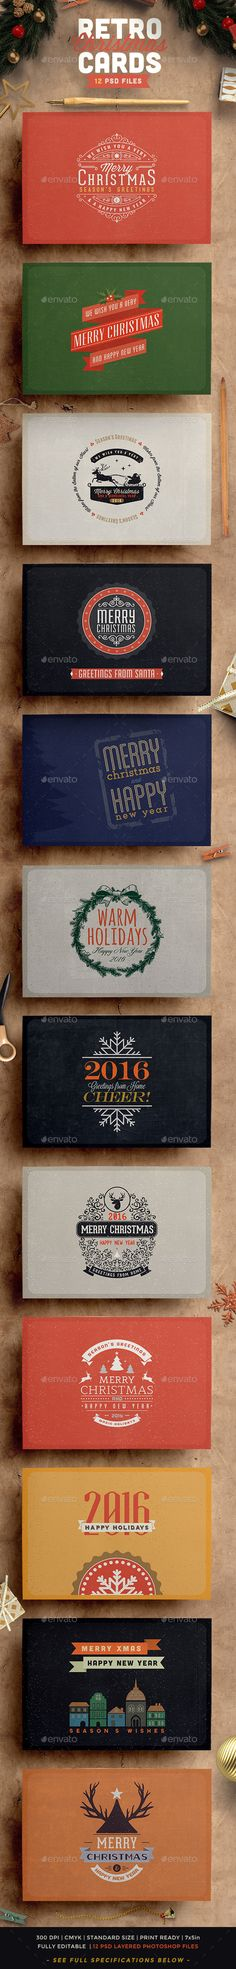 Retro / Vintage Christmas Card Pack Template PSD #design Download: http://graphicriver.net/item/retro-vintage-christmas-card-pack/13124894?ref=ksioks